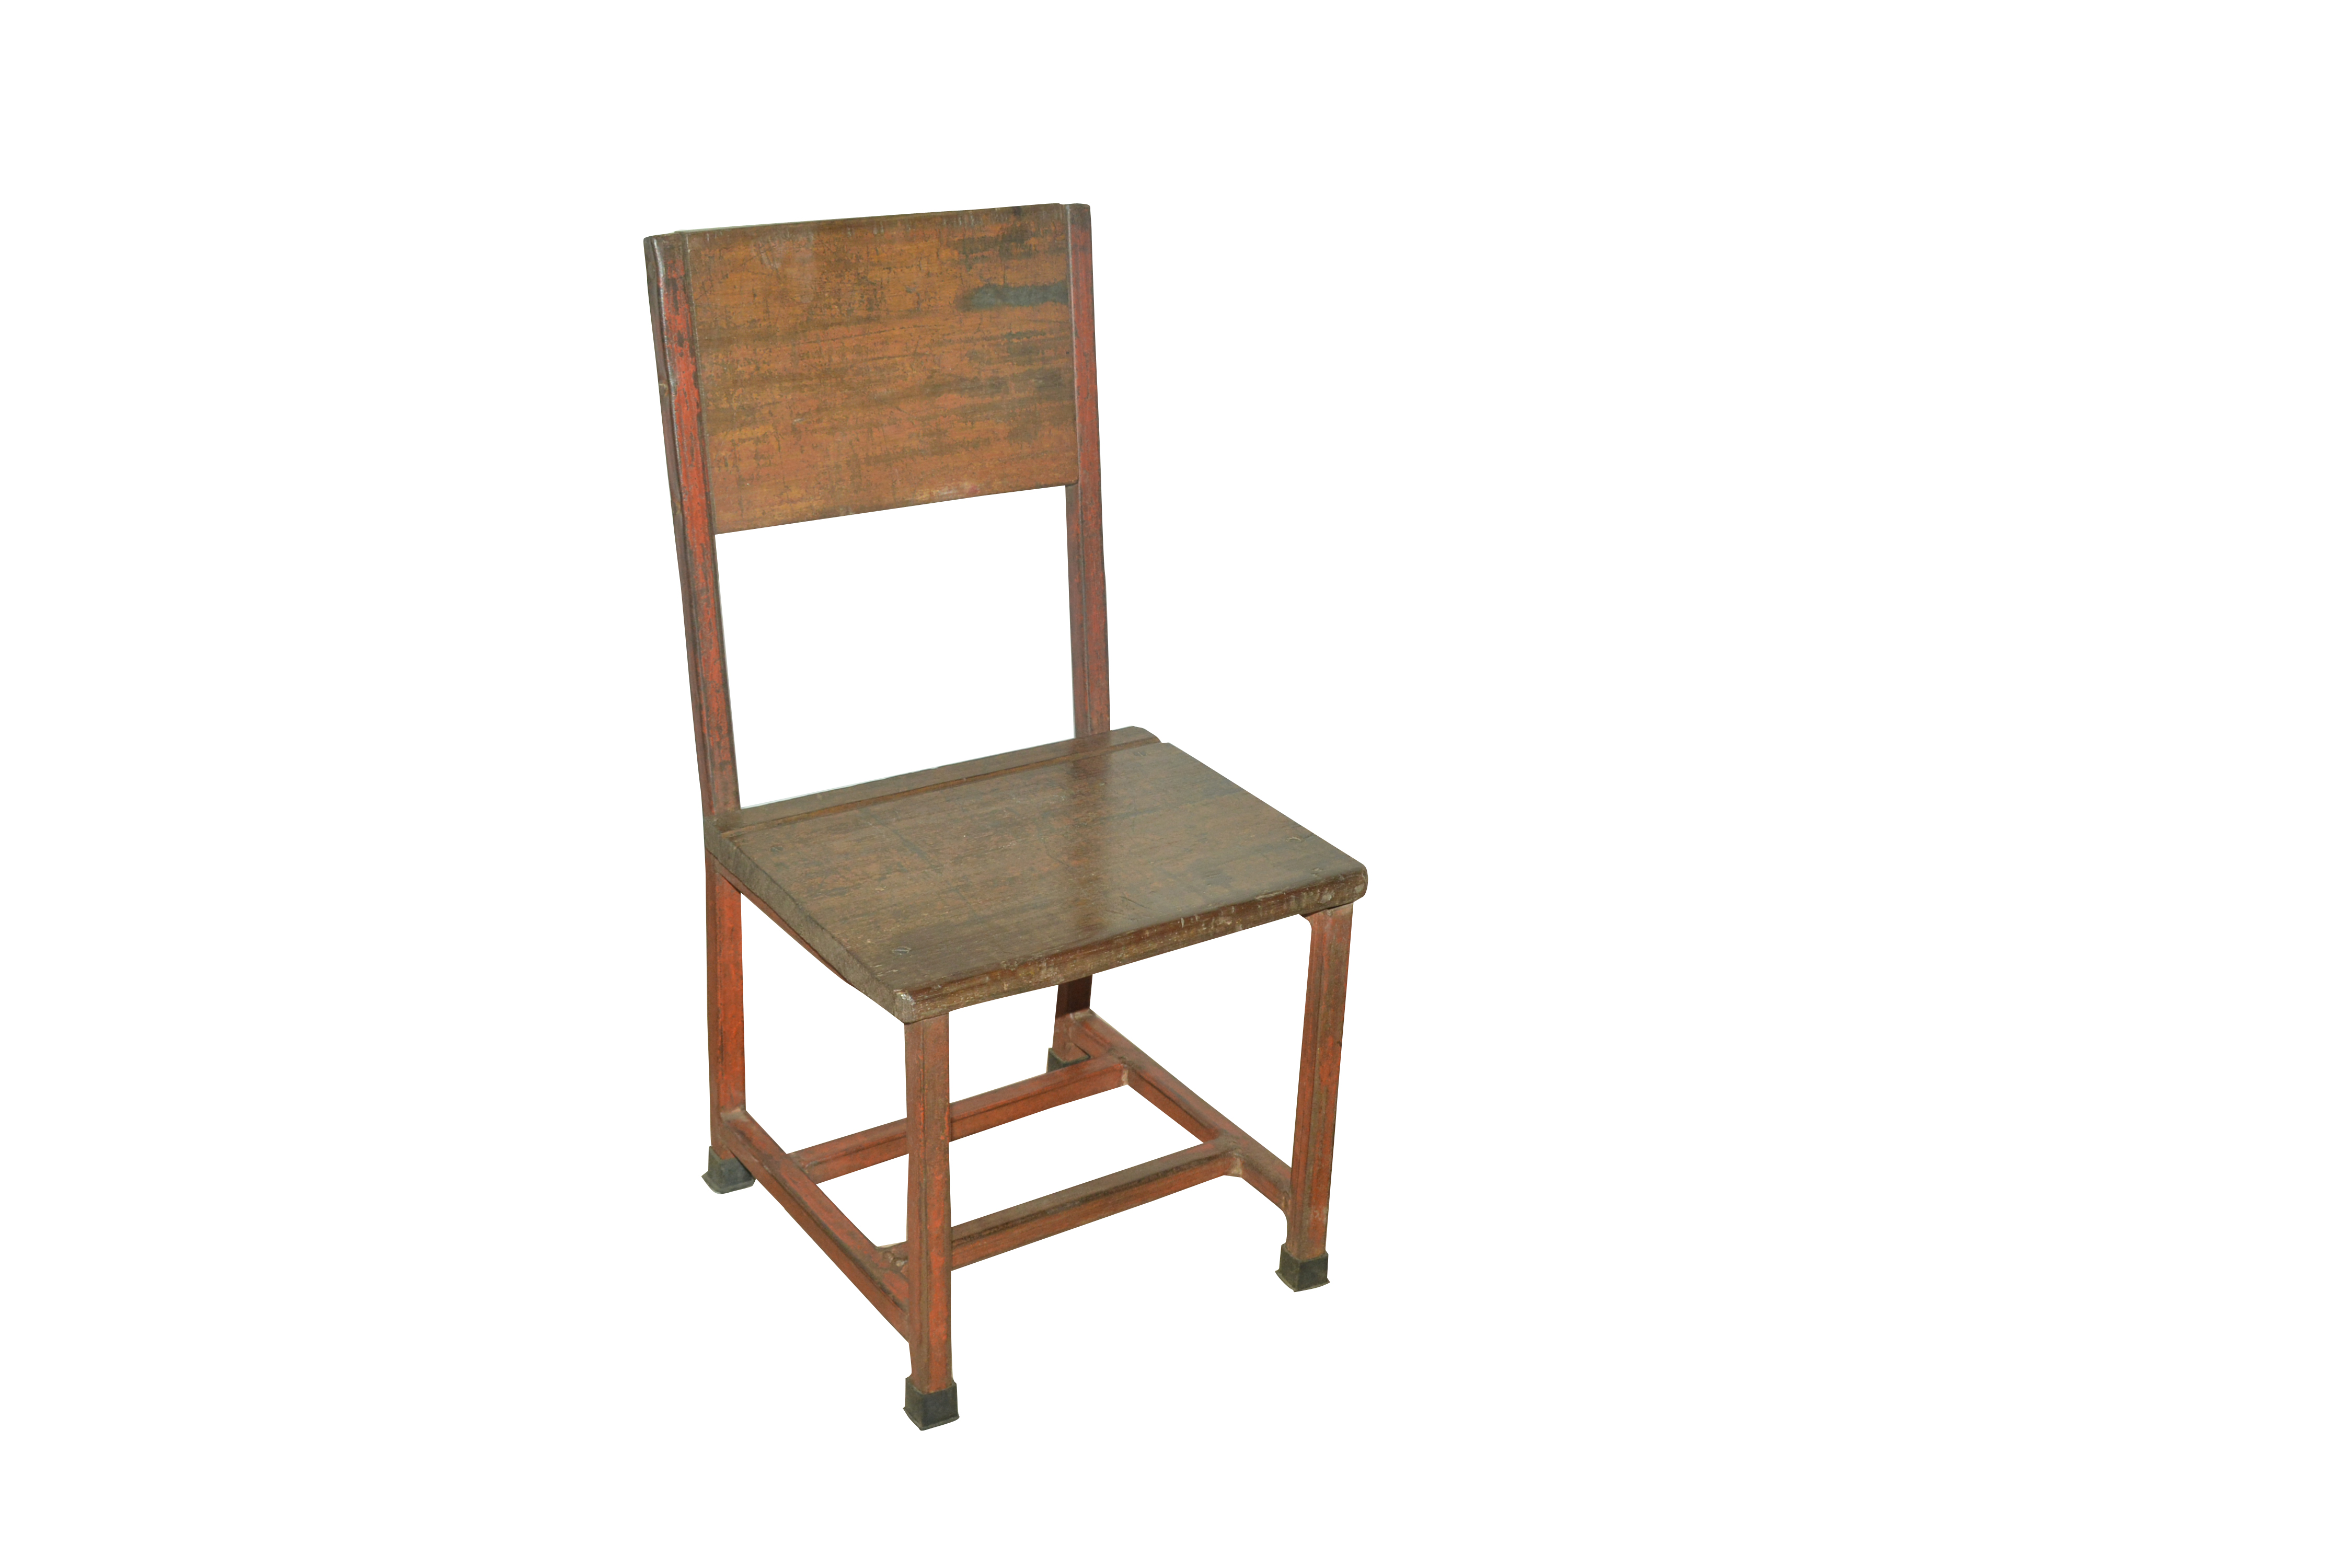 ANJO1356 BABY CHAIR